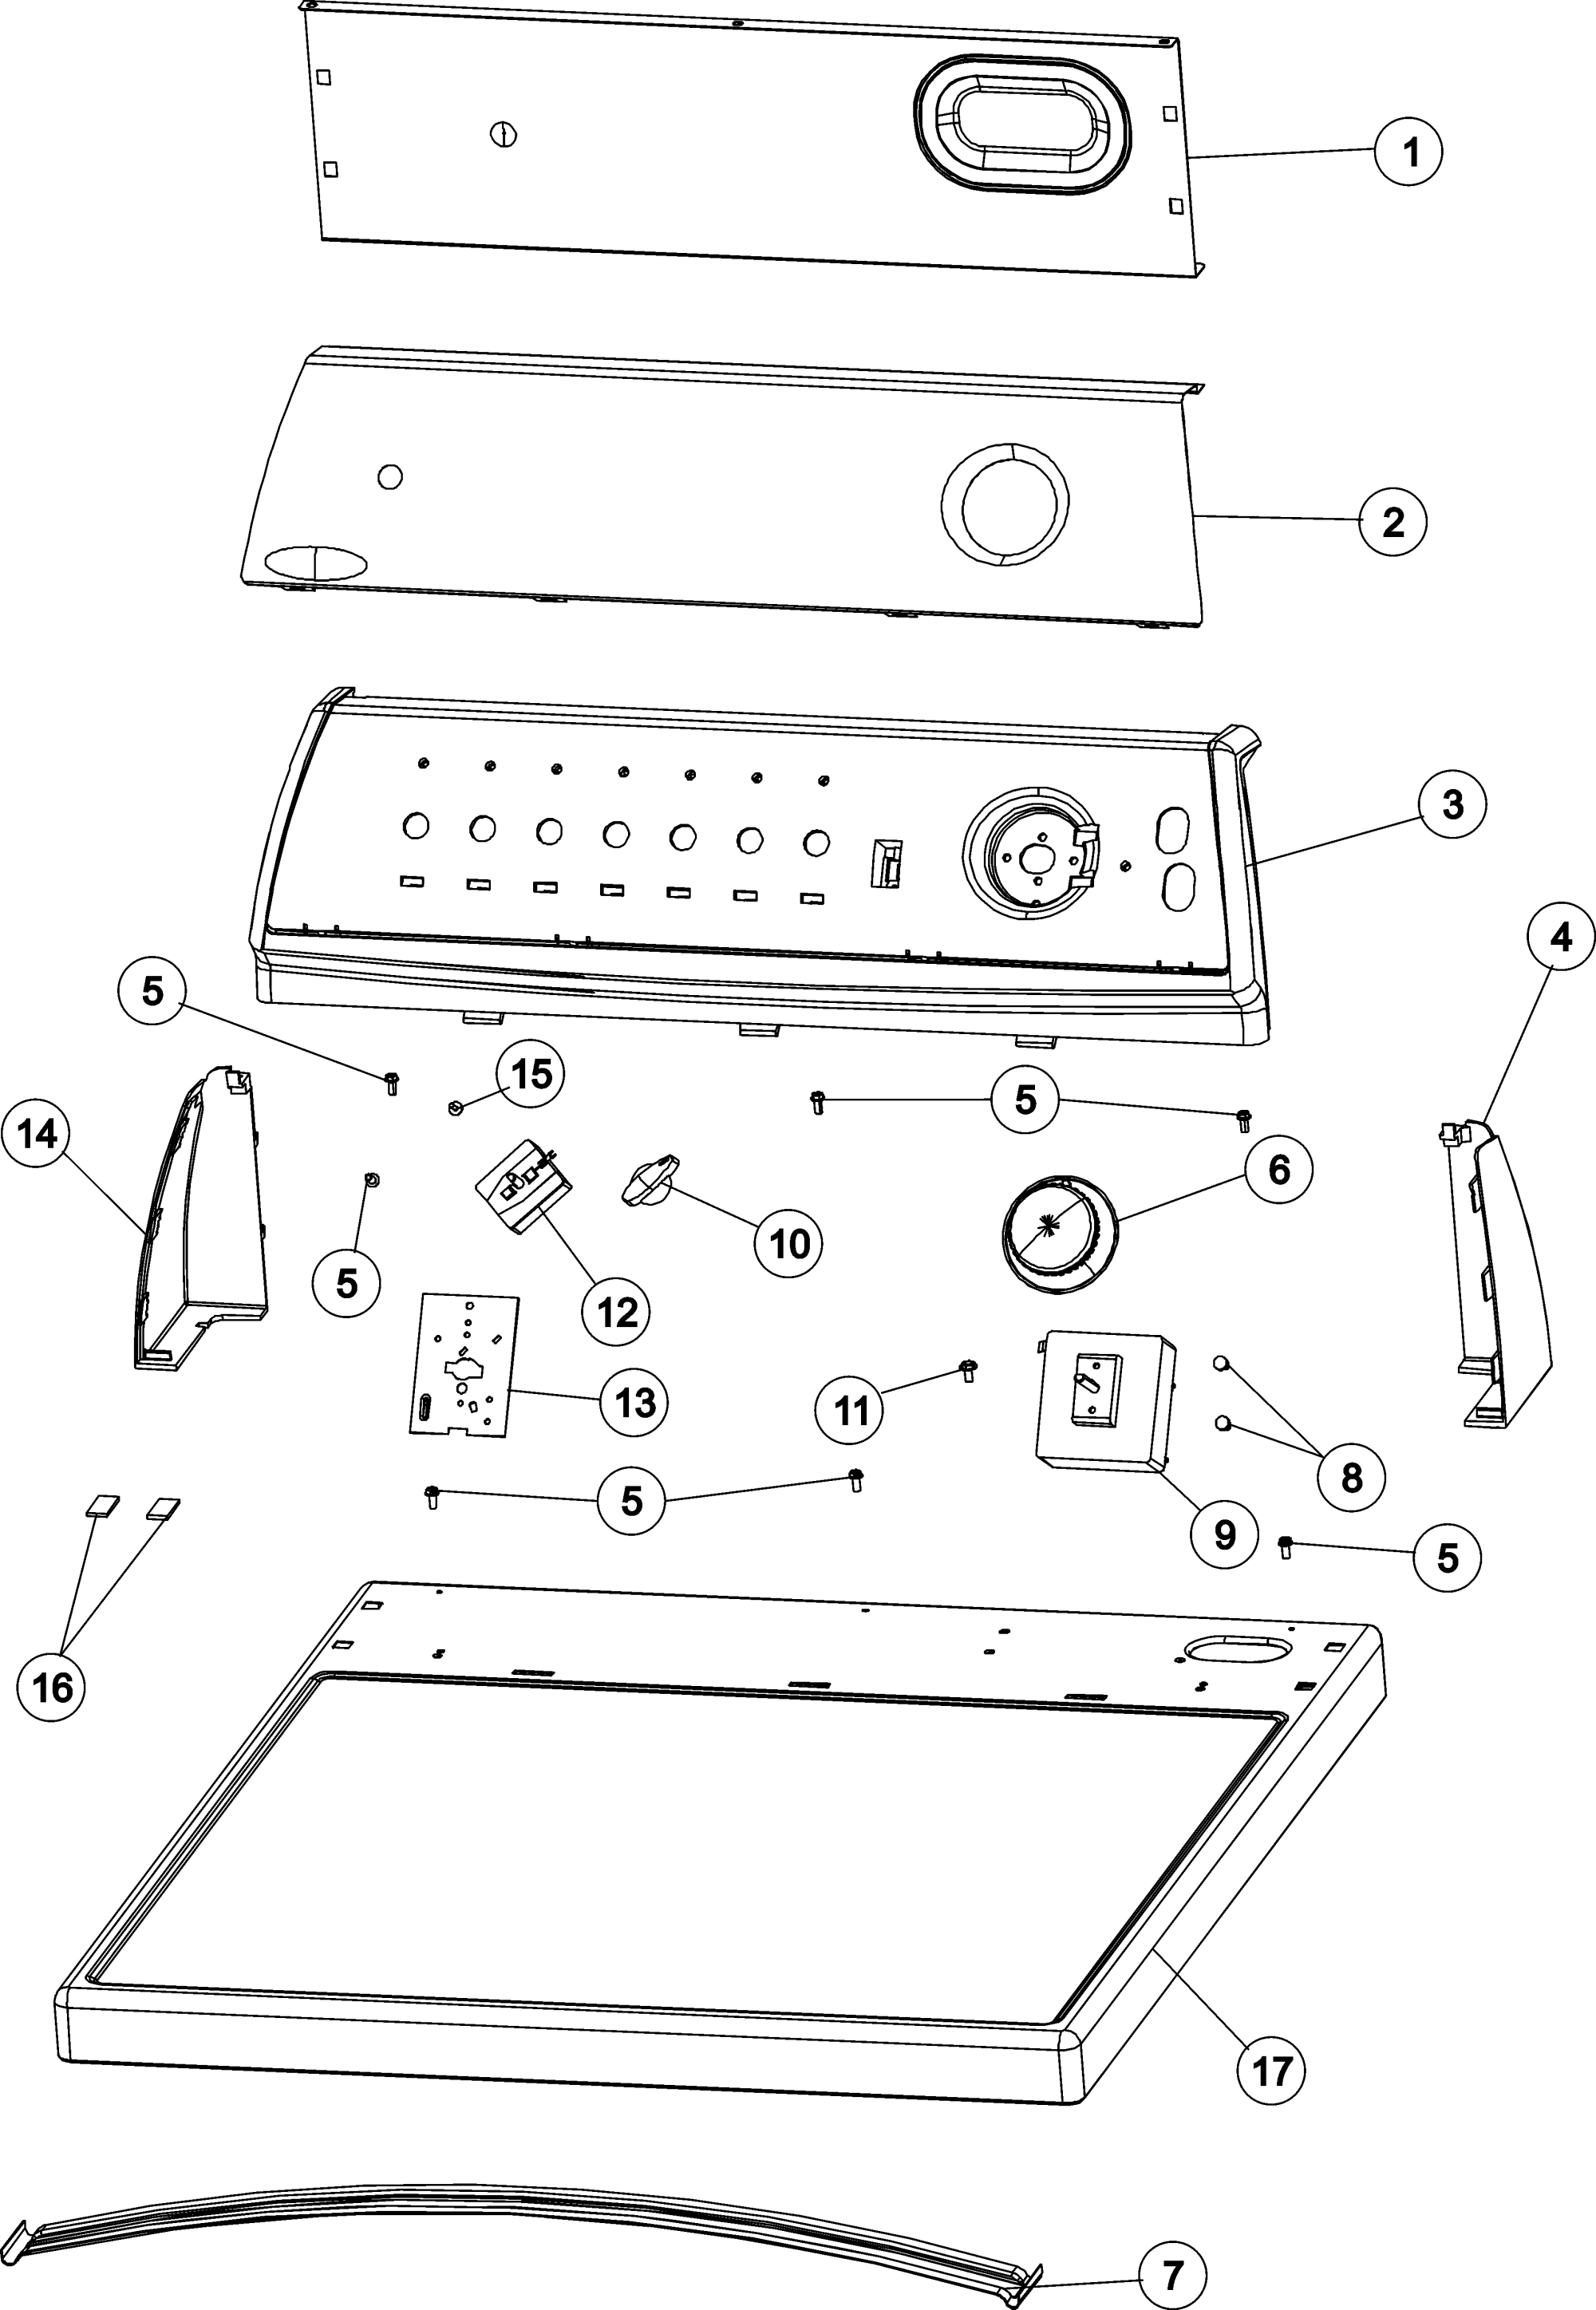 hight resolution of maytag pdet910ayw control panel top diagram